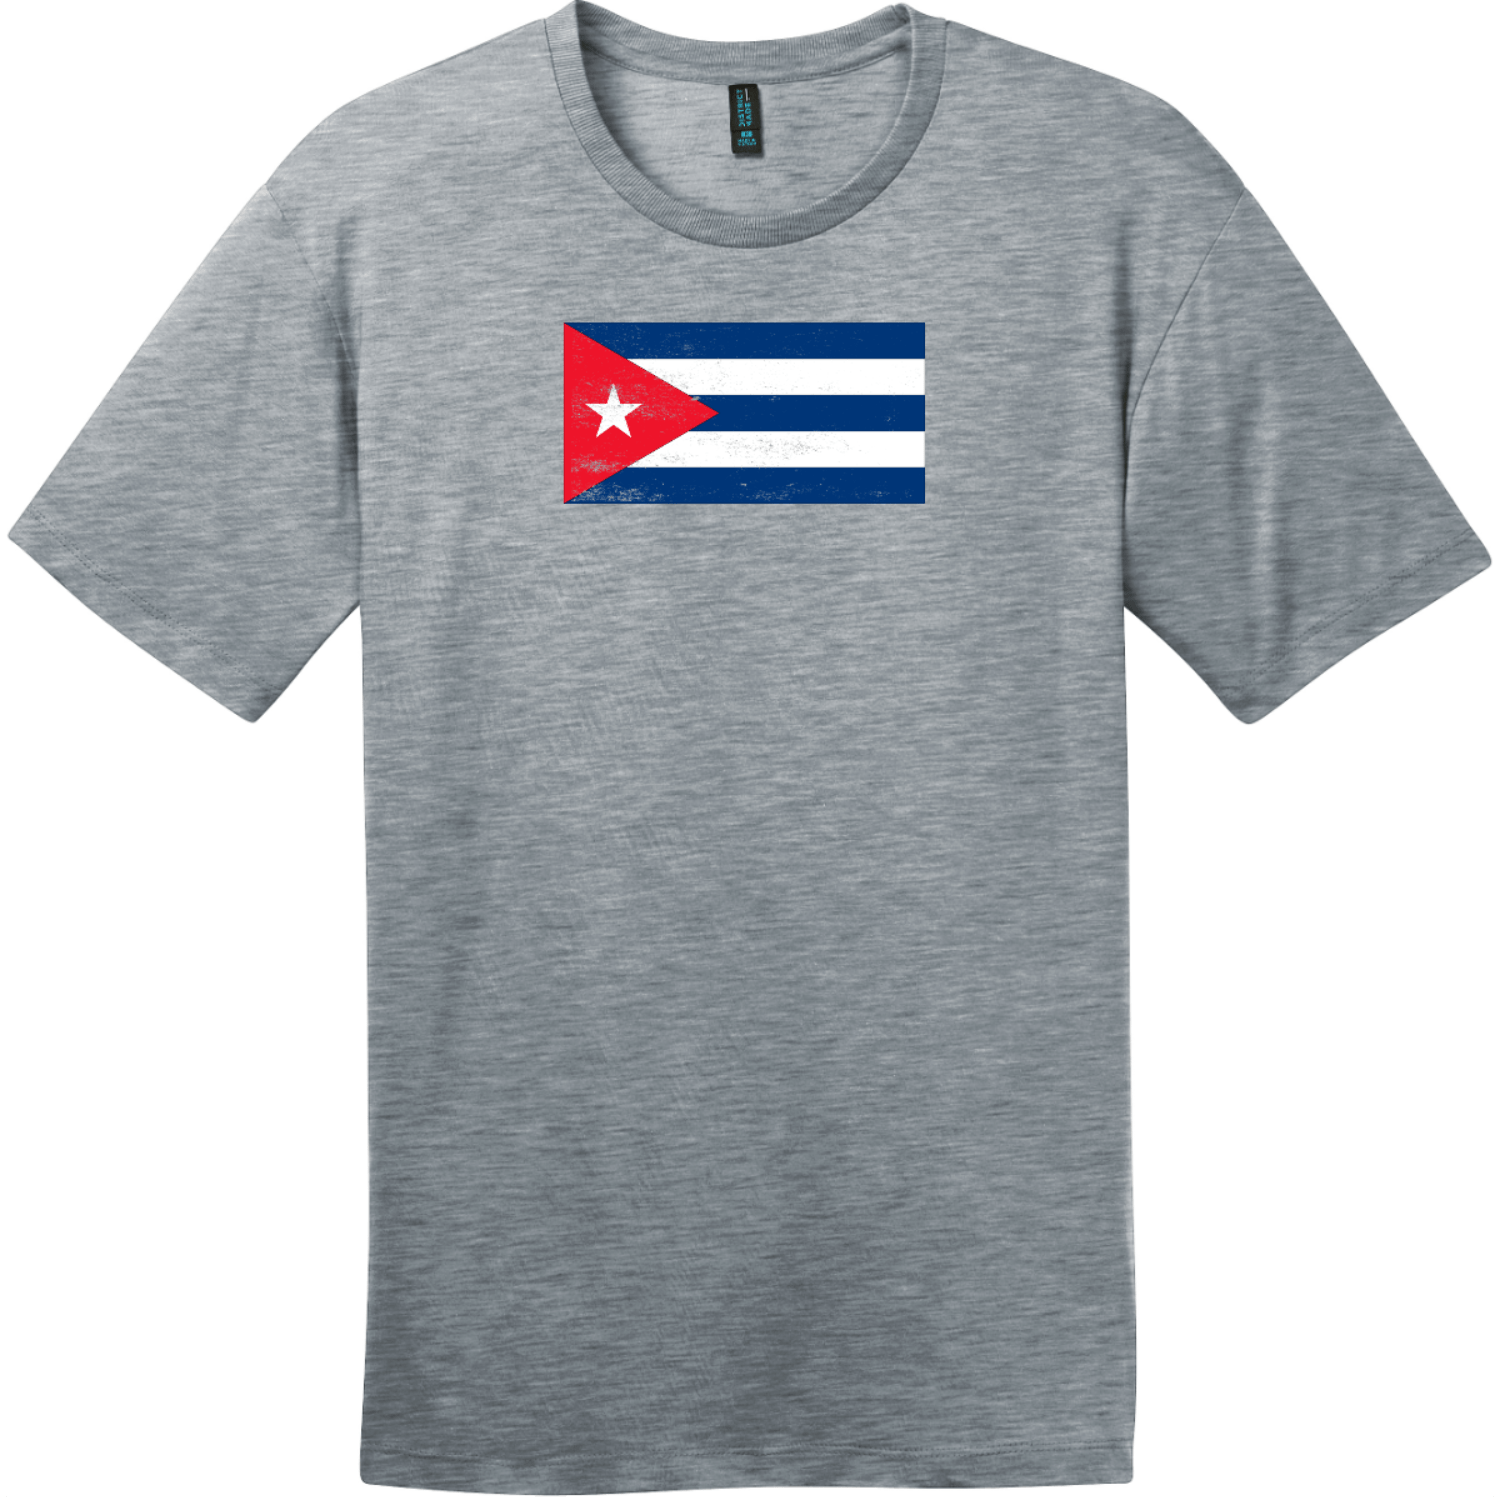 Cuba Vintage Flag T-Shirt Heathered Steel District Perfect Weight Tee DT104